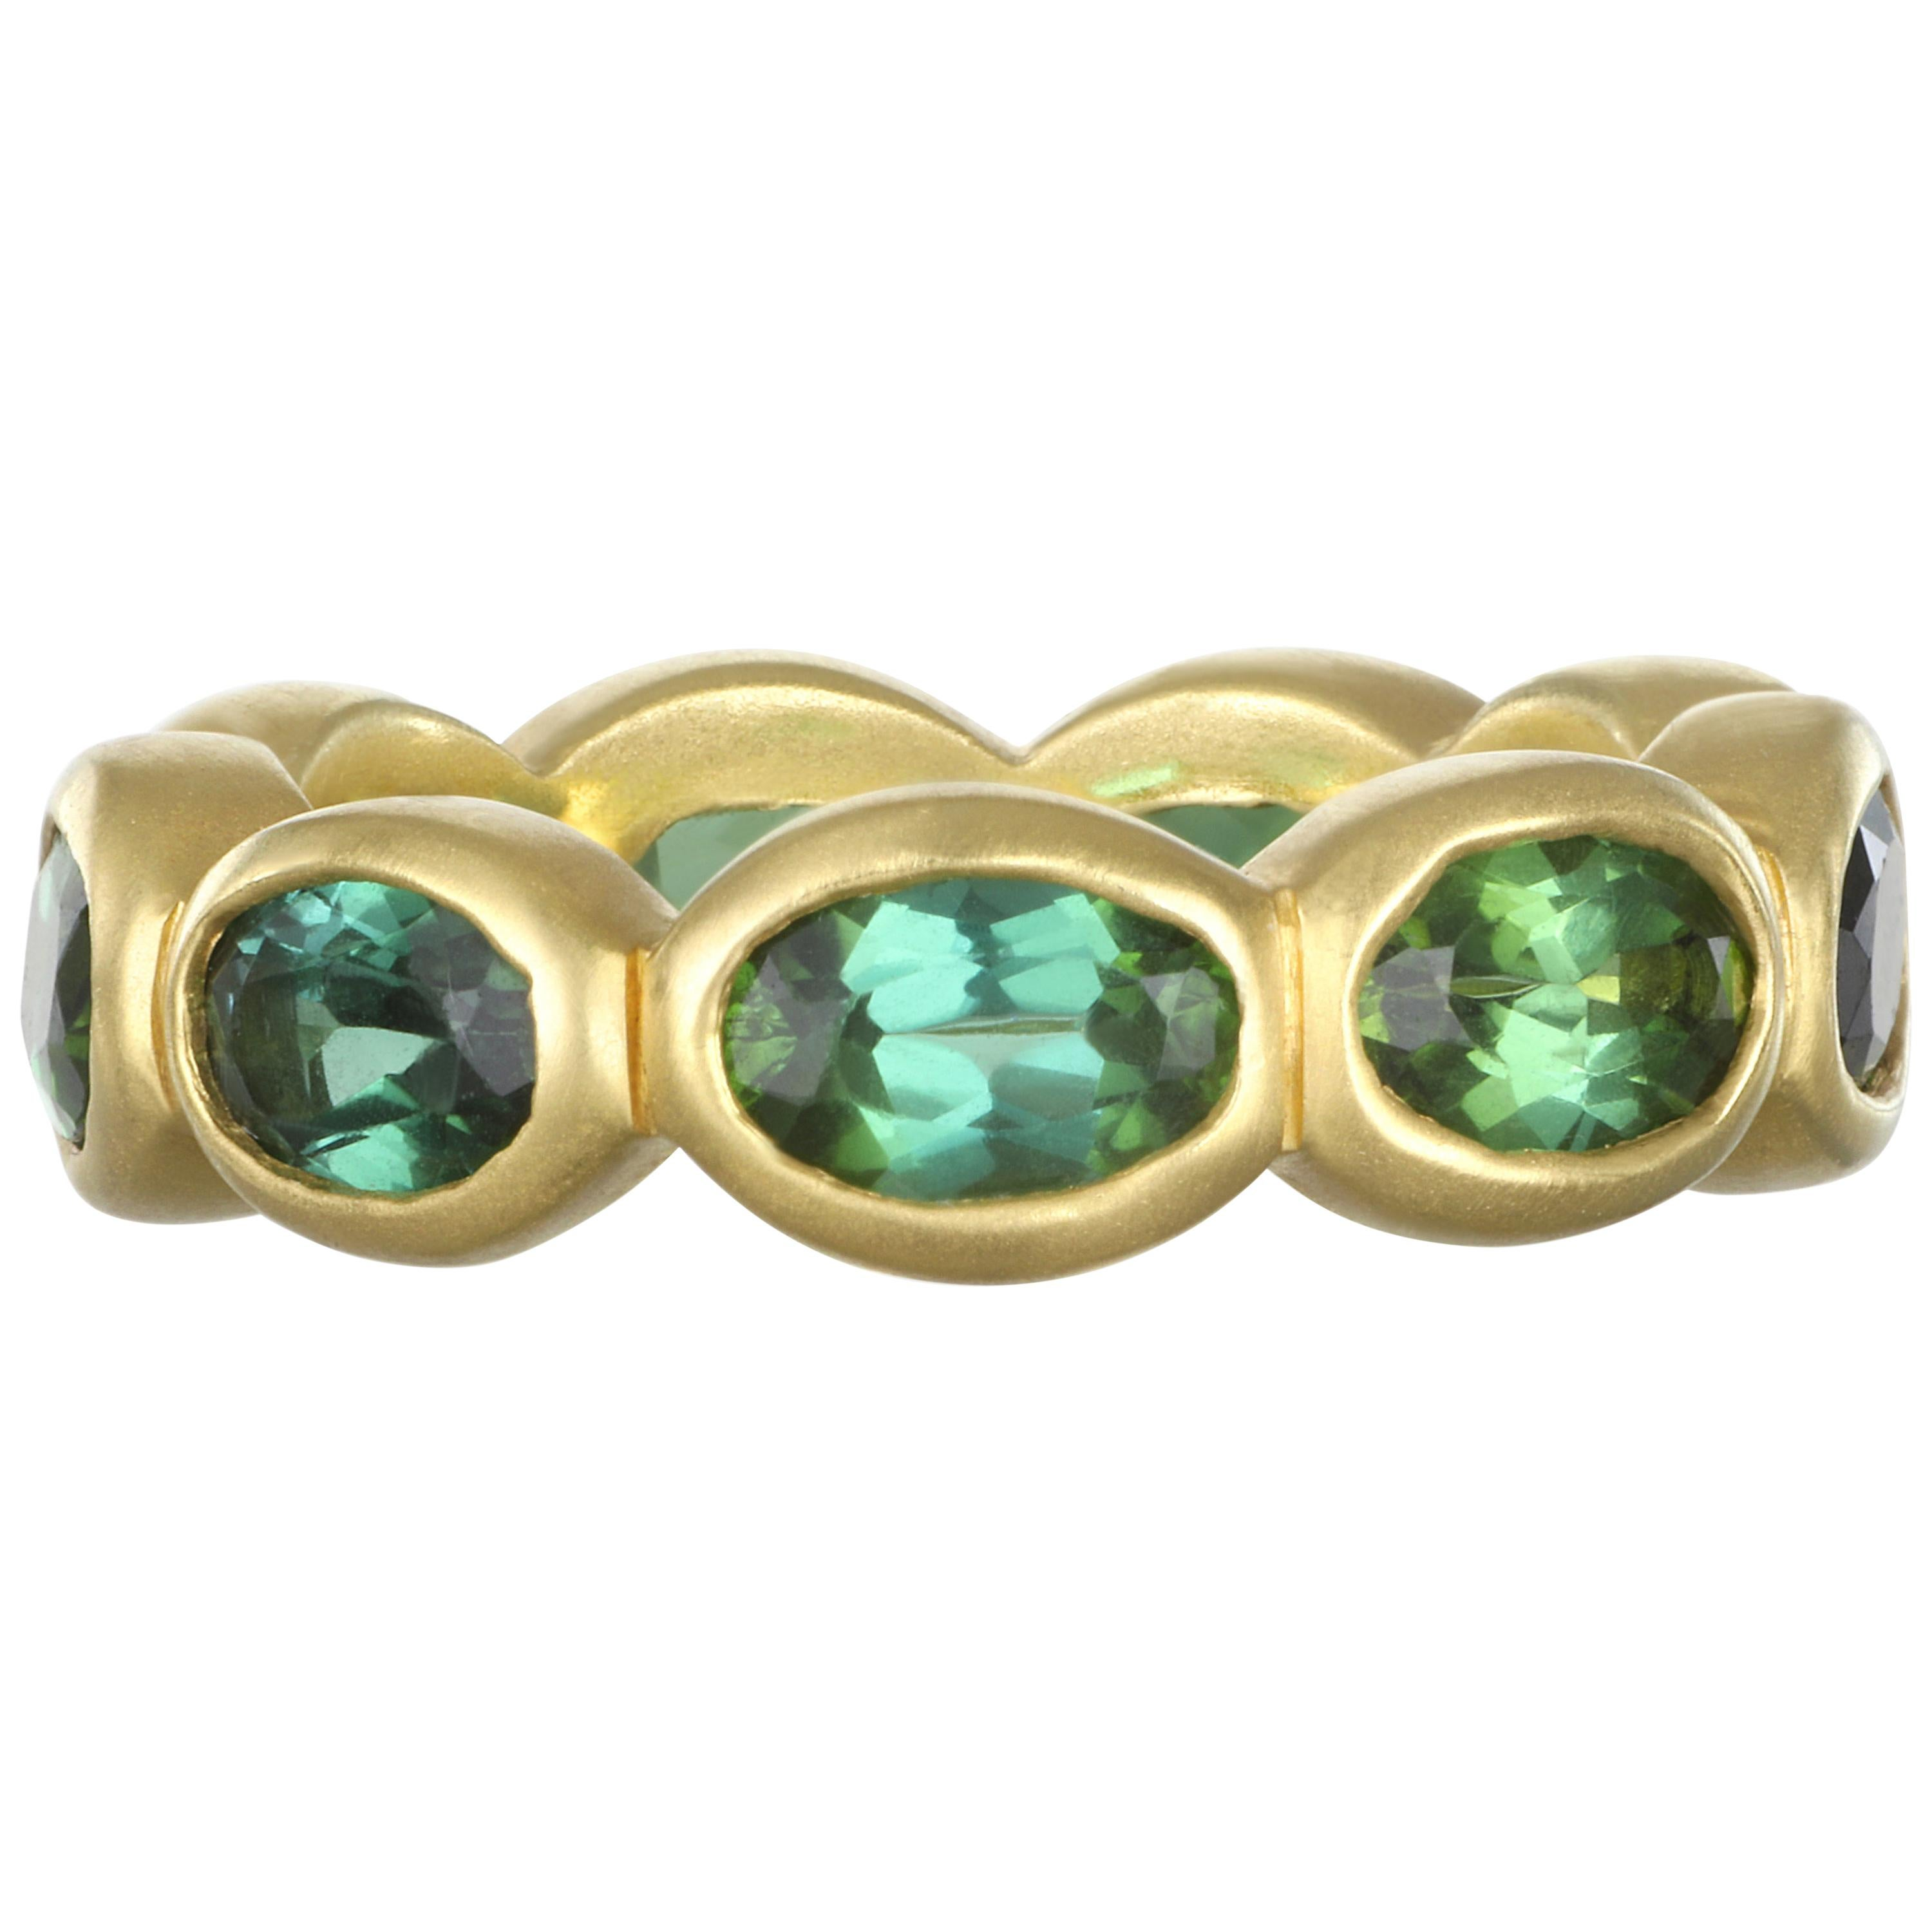 Faye Kim 18 Karat Gold Green Tourmaline Eternity Band Ring